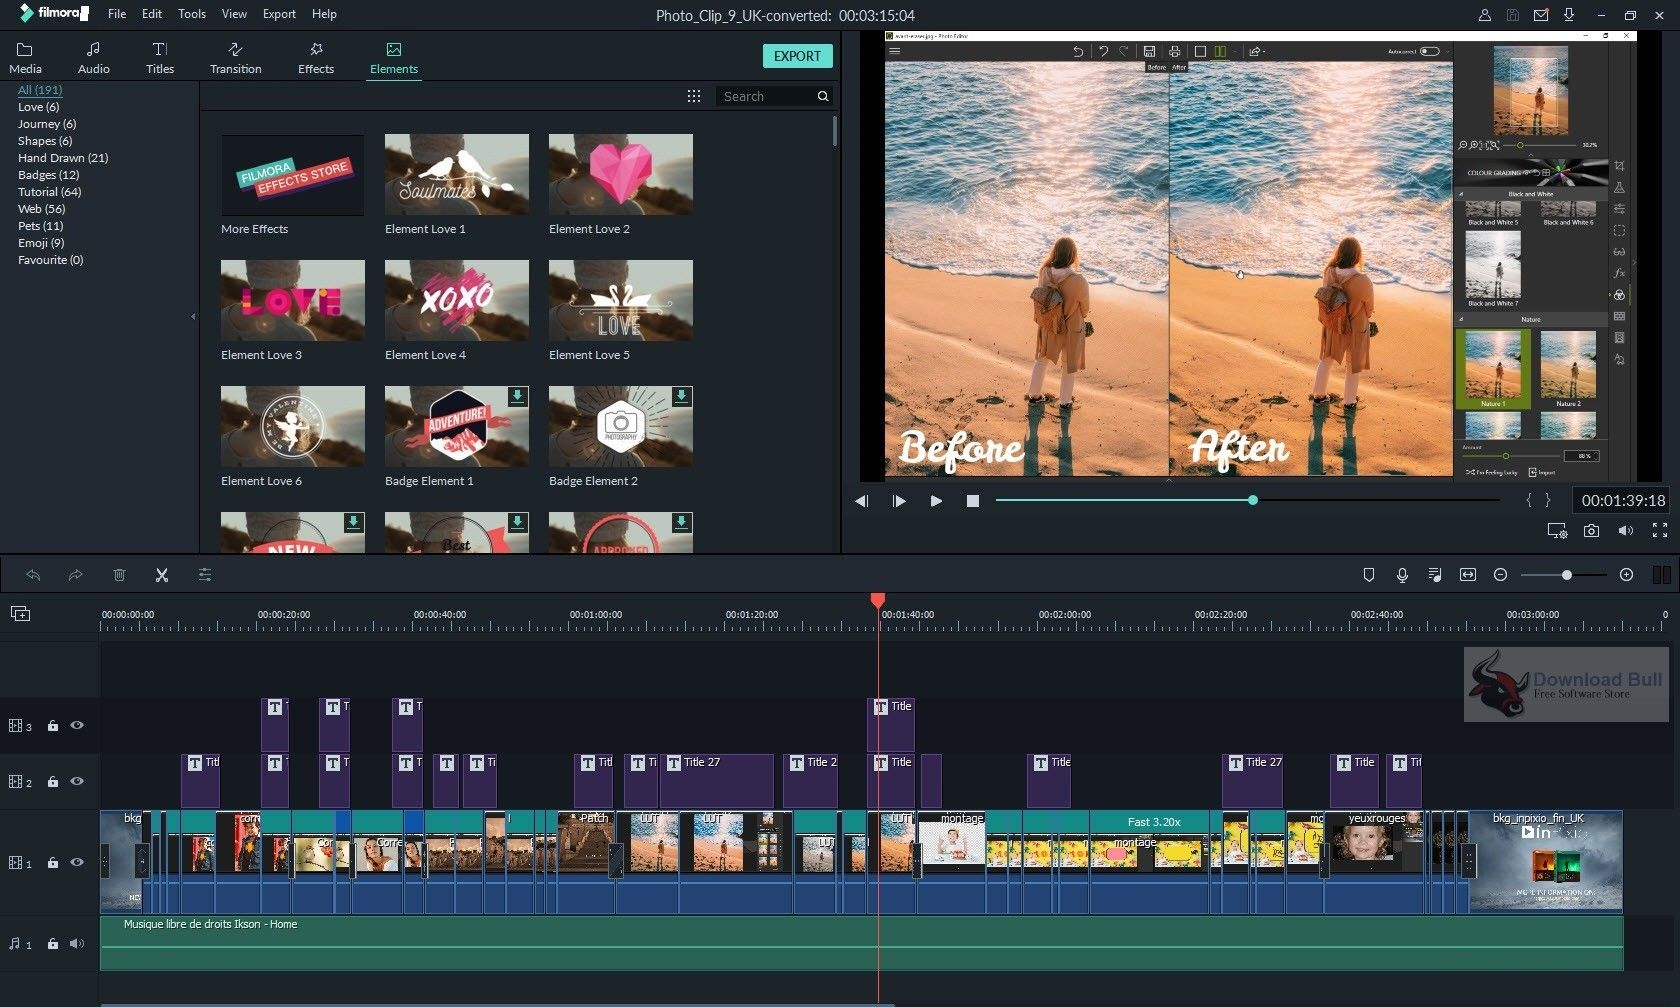 What is Wondershare Filmora 9.5.1? | Video editing software, Video ...